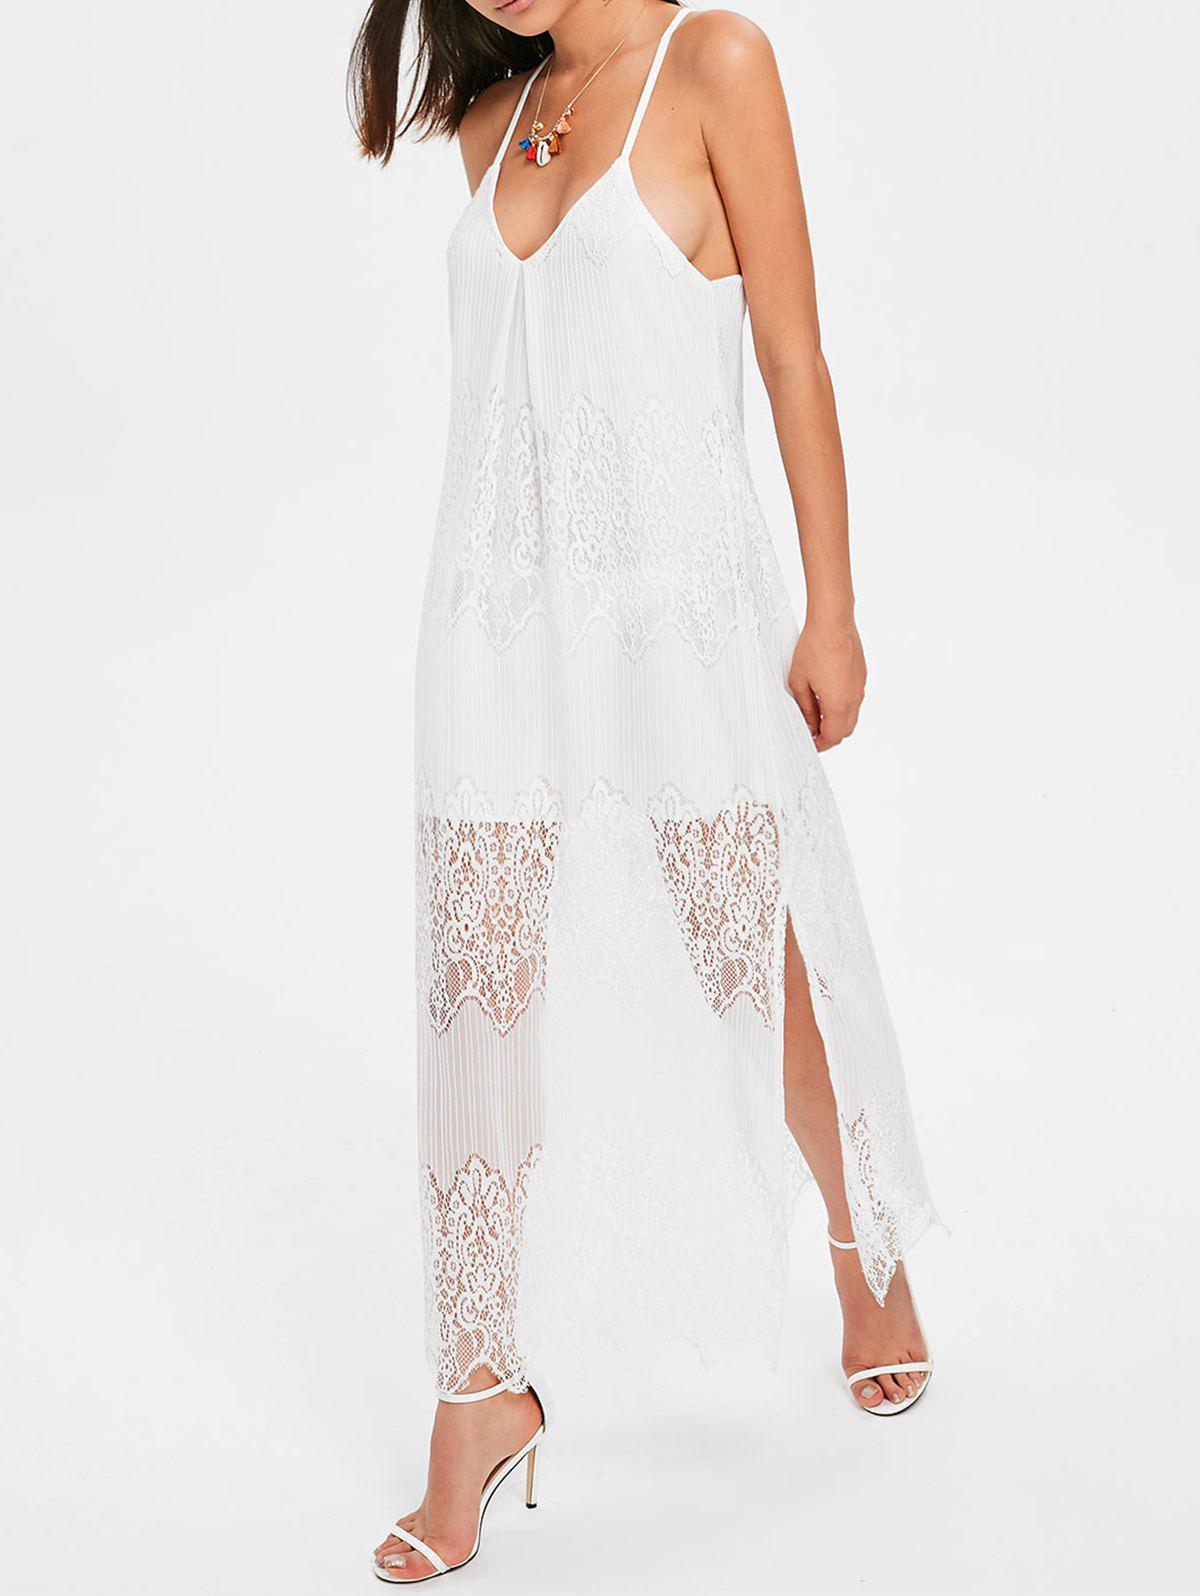 Store Sleeveless Lace Overlay Beach Dress